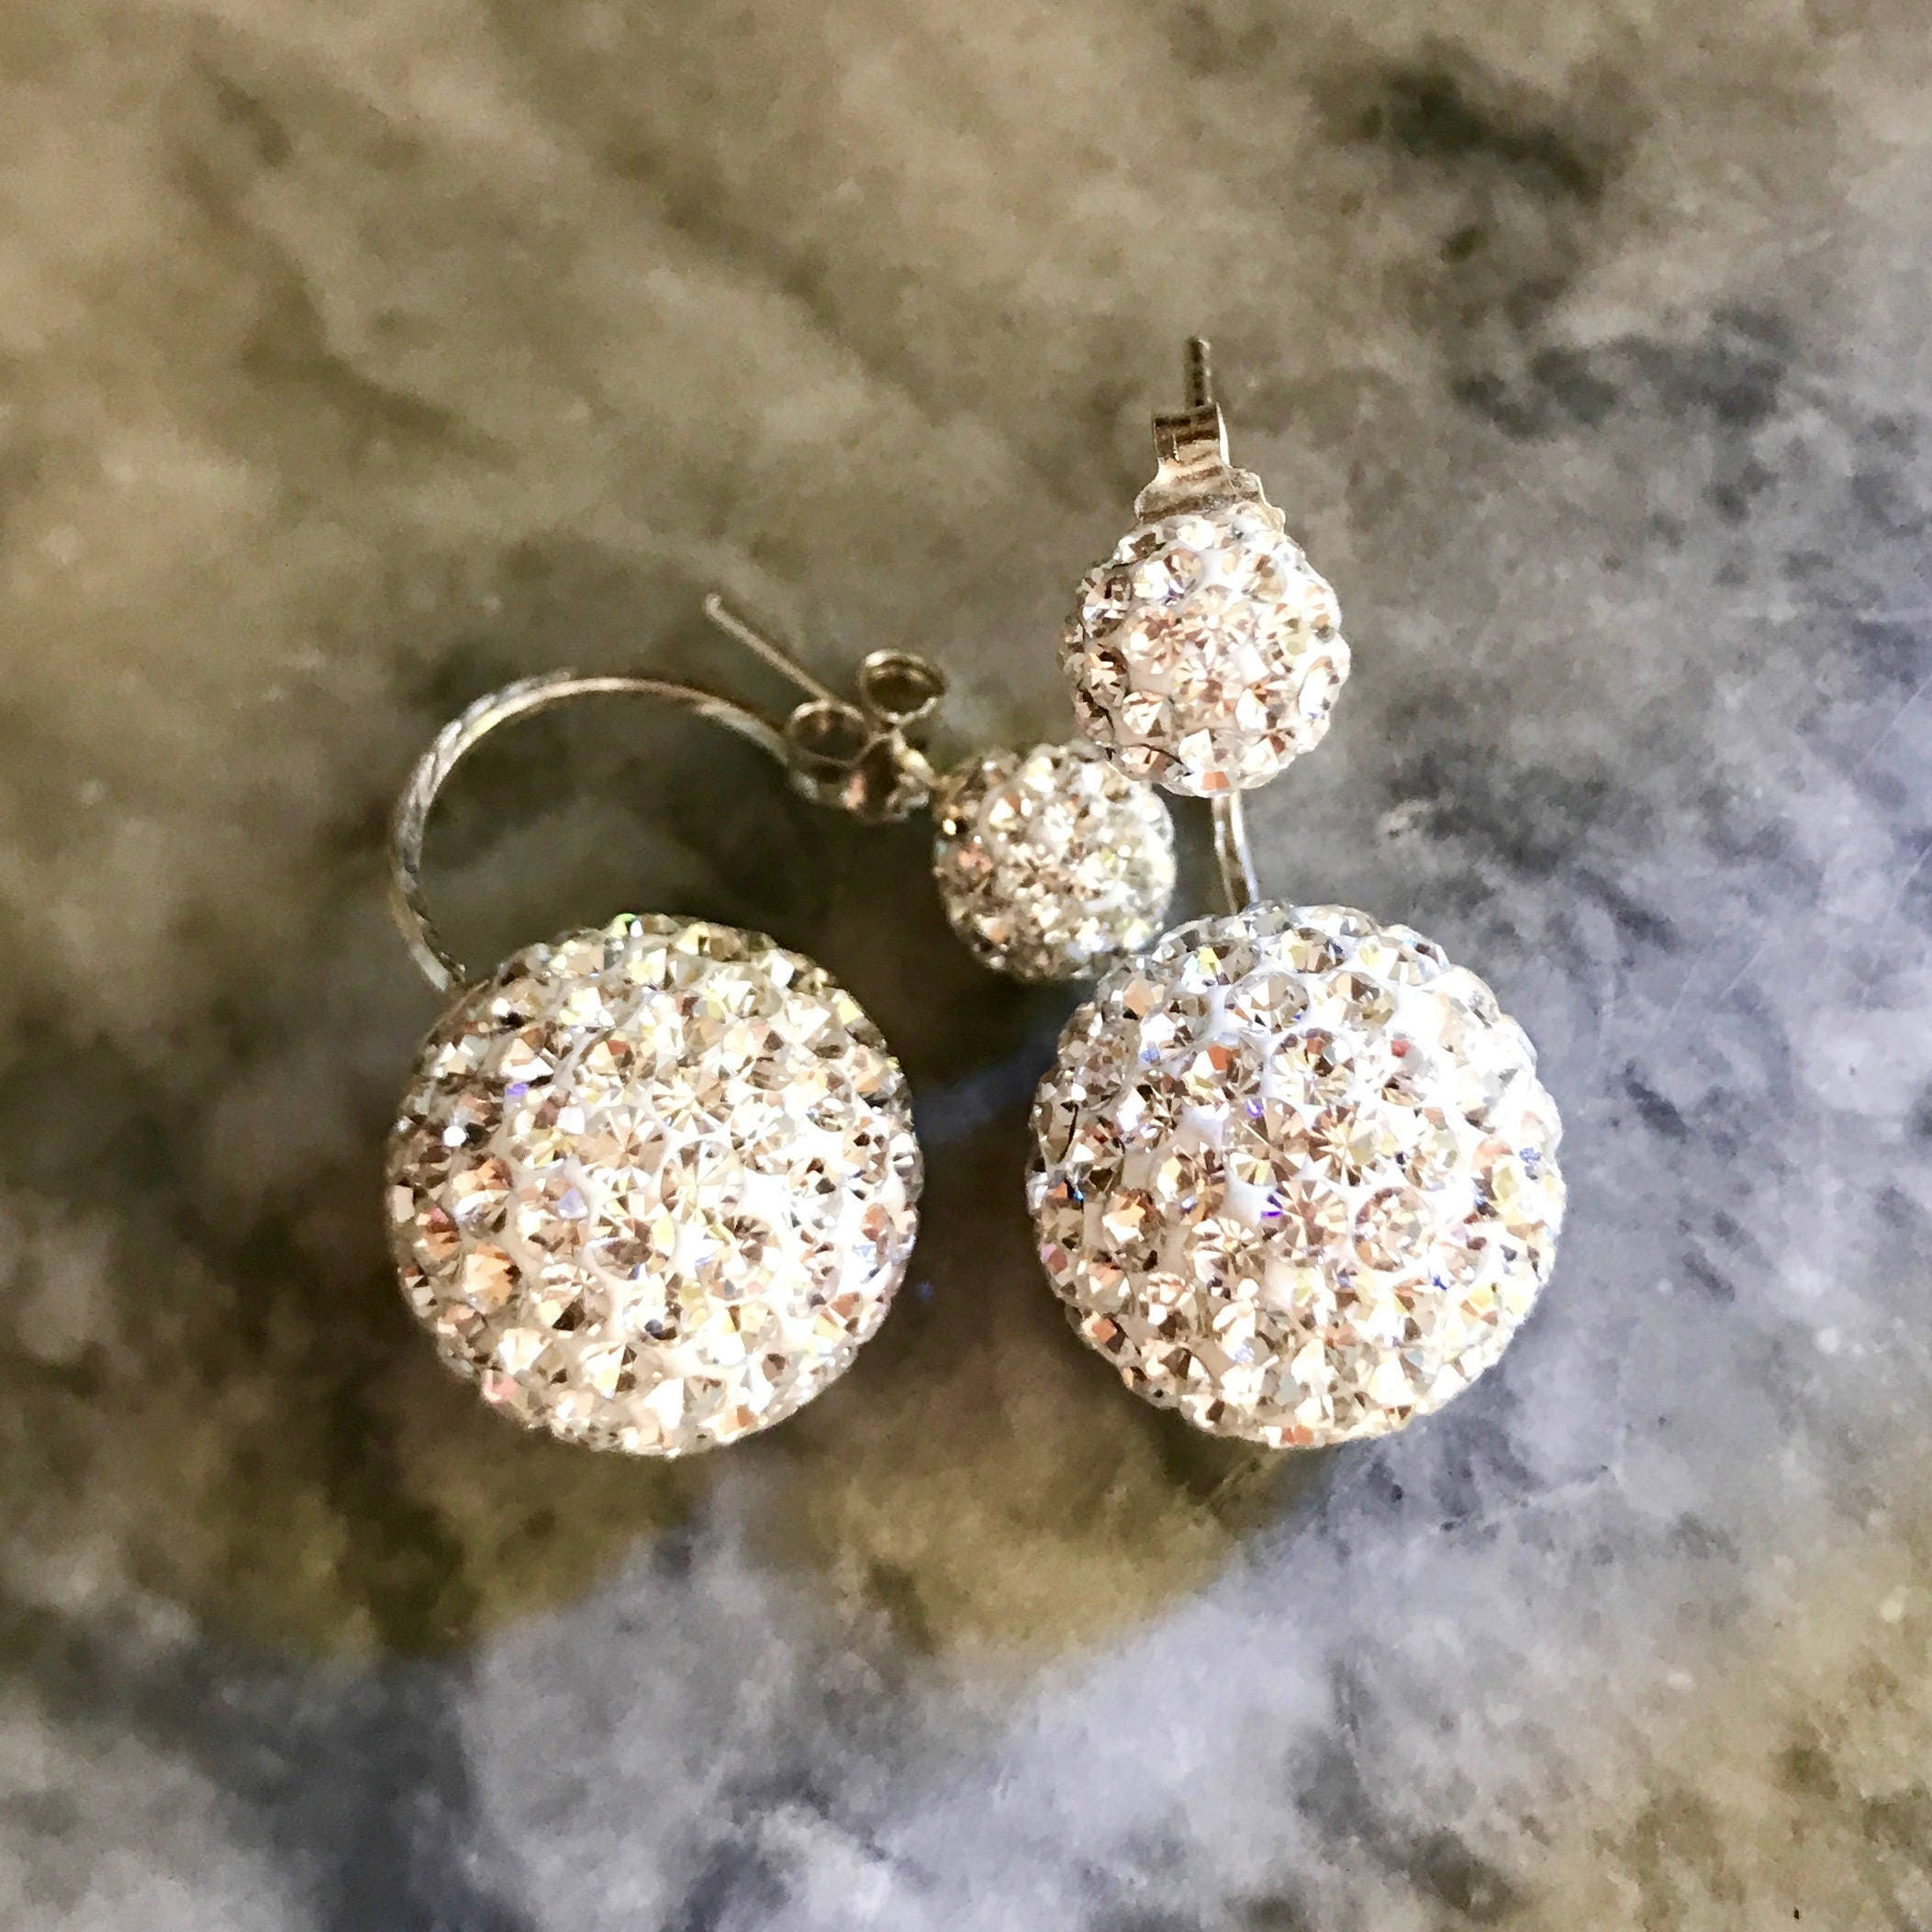 sparkly earrings stud earring